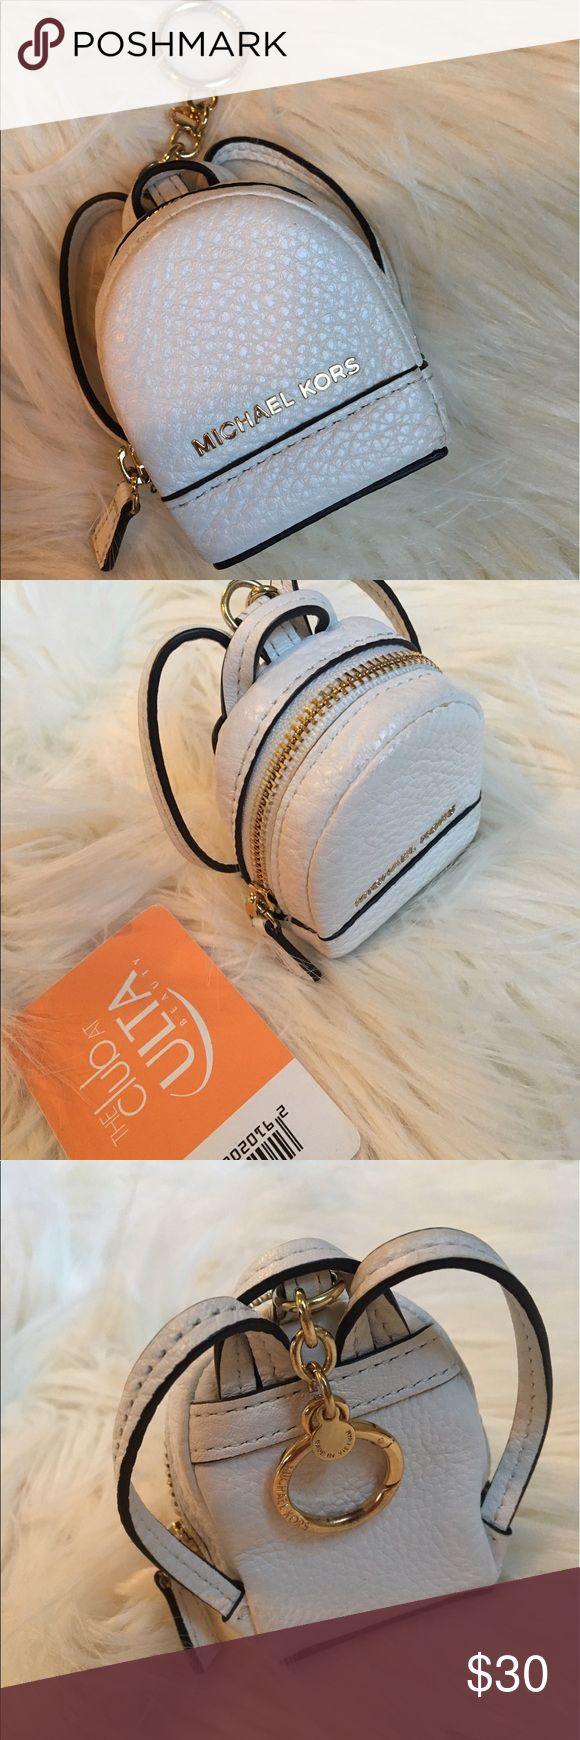 Michael Kors Coin Purse Mini Backpack Keychain Authentic. White leather, super cute, I could resist buying it! Holds a lot of coins and the zipper is easy access. Looks cute on your purse or pack pack or with your keys. Made very well. Put next to my Ulta card for size comparison. Michael Kors Bags Mini Bags